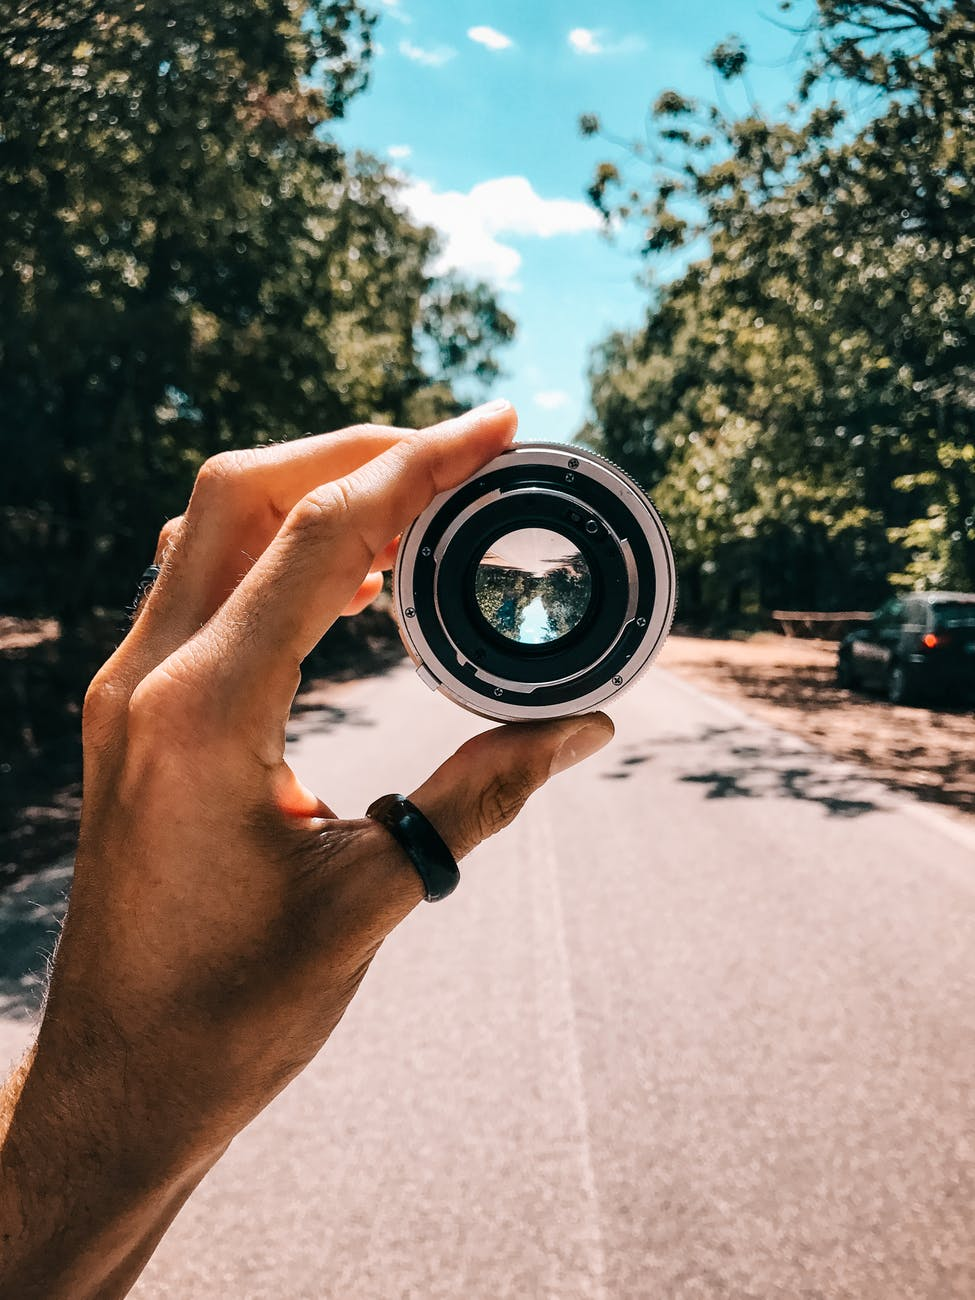 person holding camera lens in the middle of street under blue sky